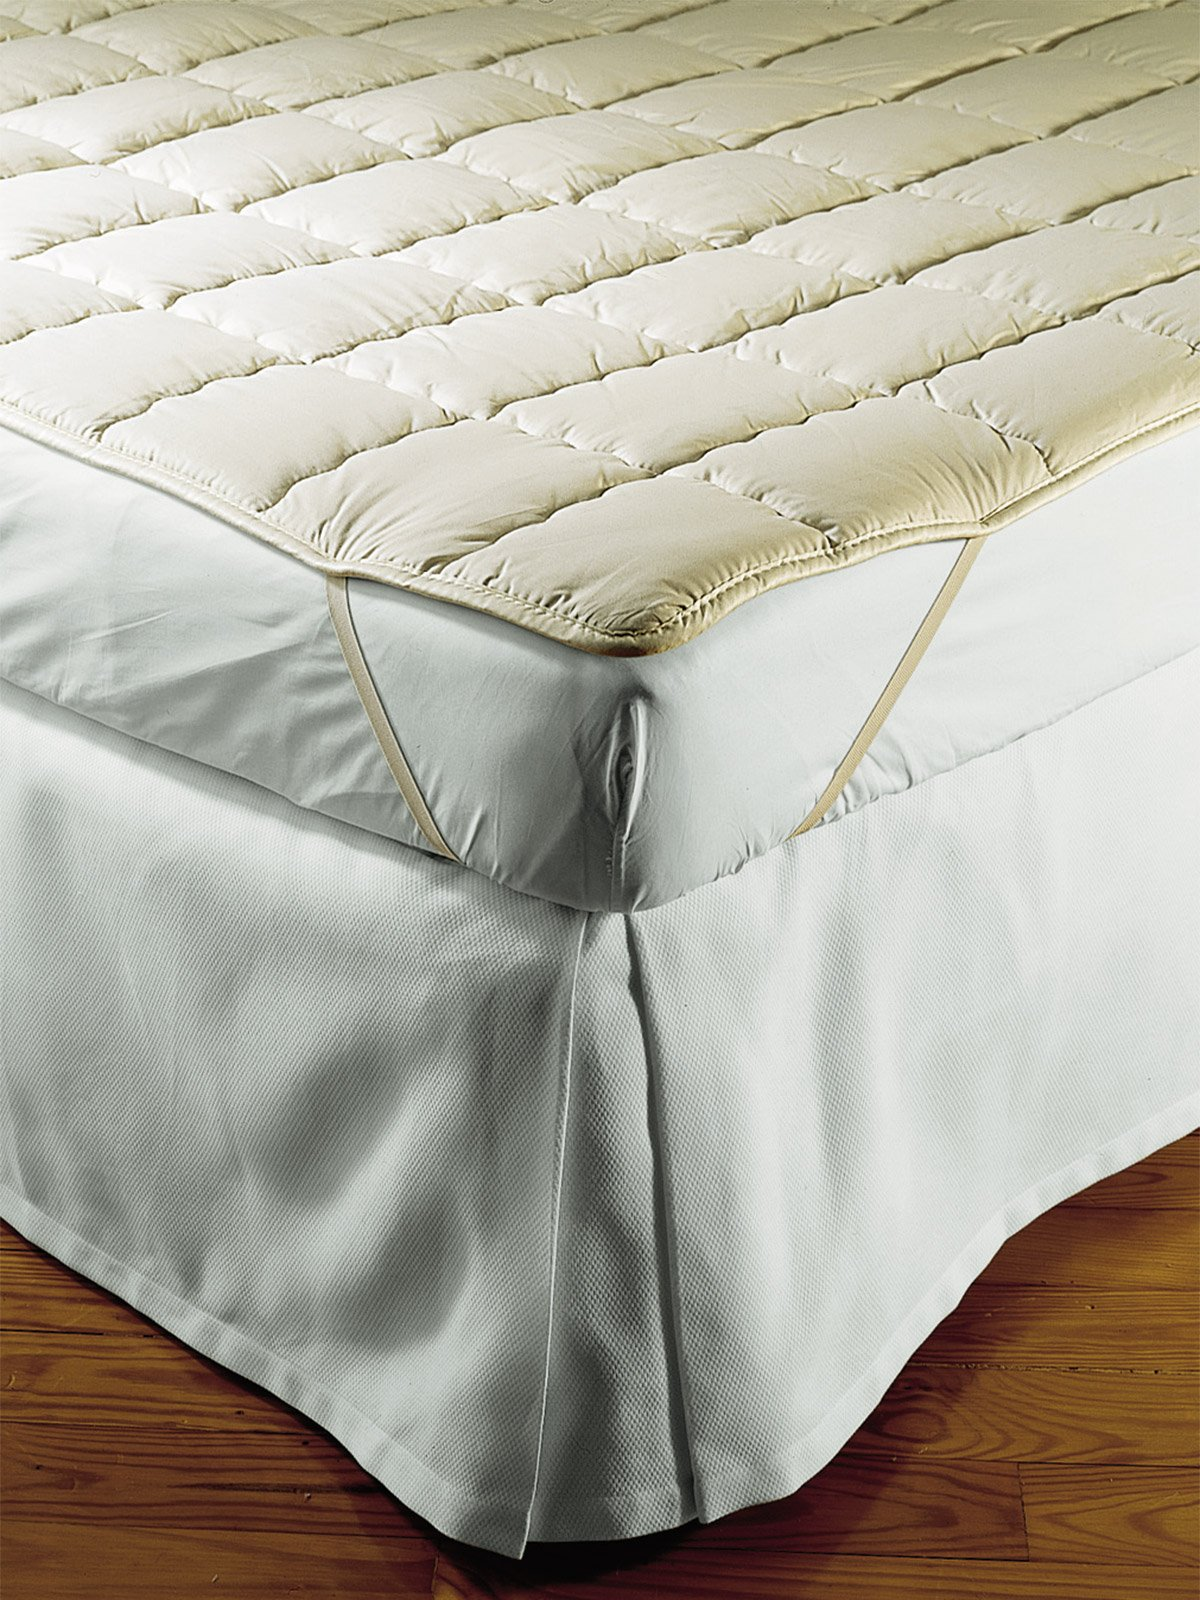 The Cheapest Princess Dream Plush  The Cheapest Princess Dream Plush Pillow Top King Size Mattress And Box Spring Set Online   Pillow Top King Size Mattress And Box Spring Set Online